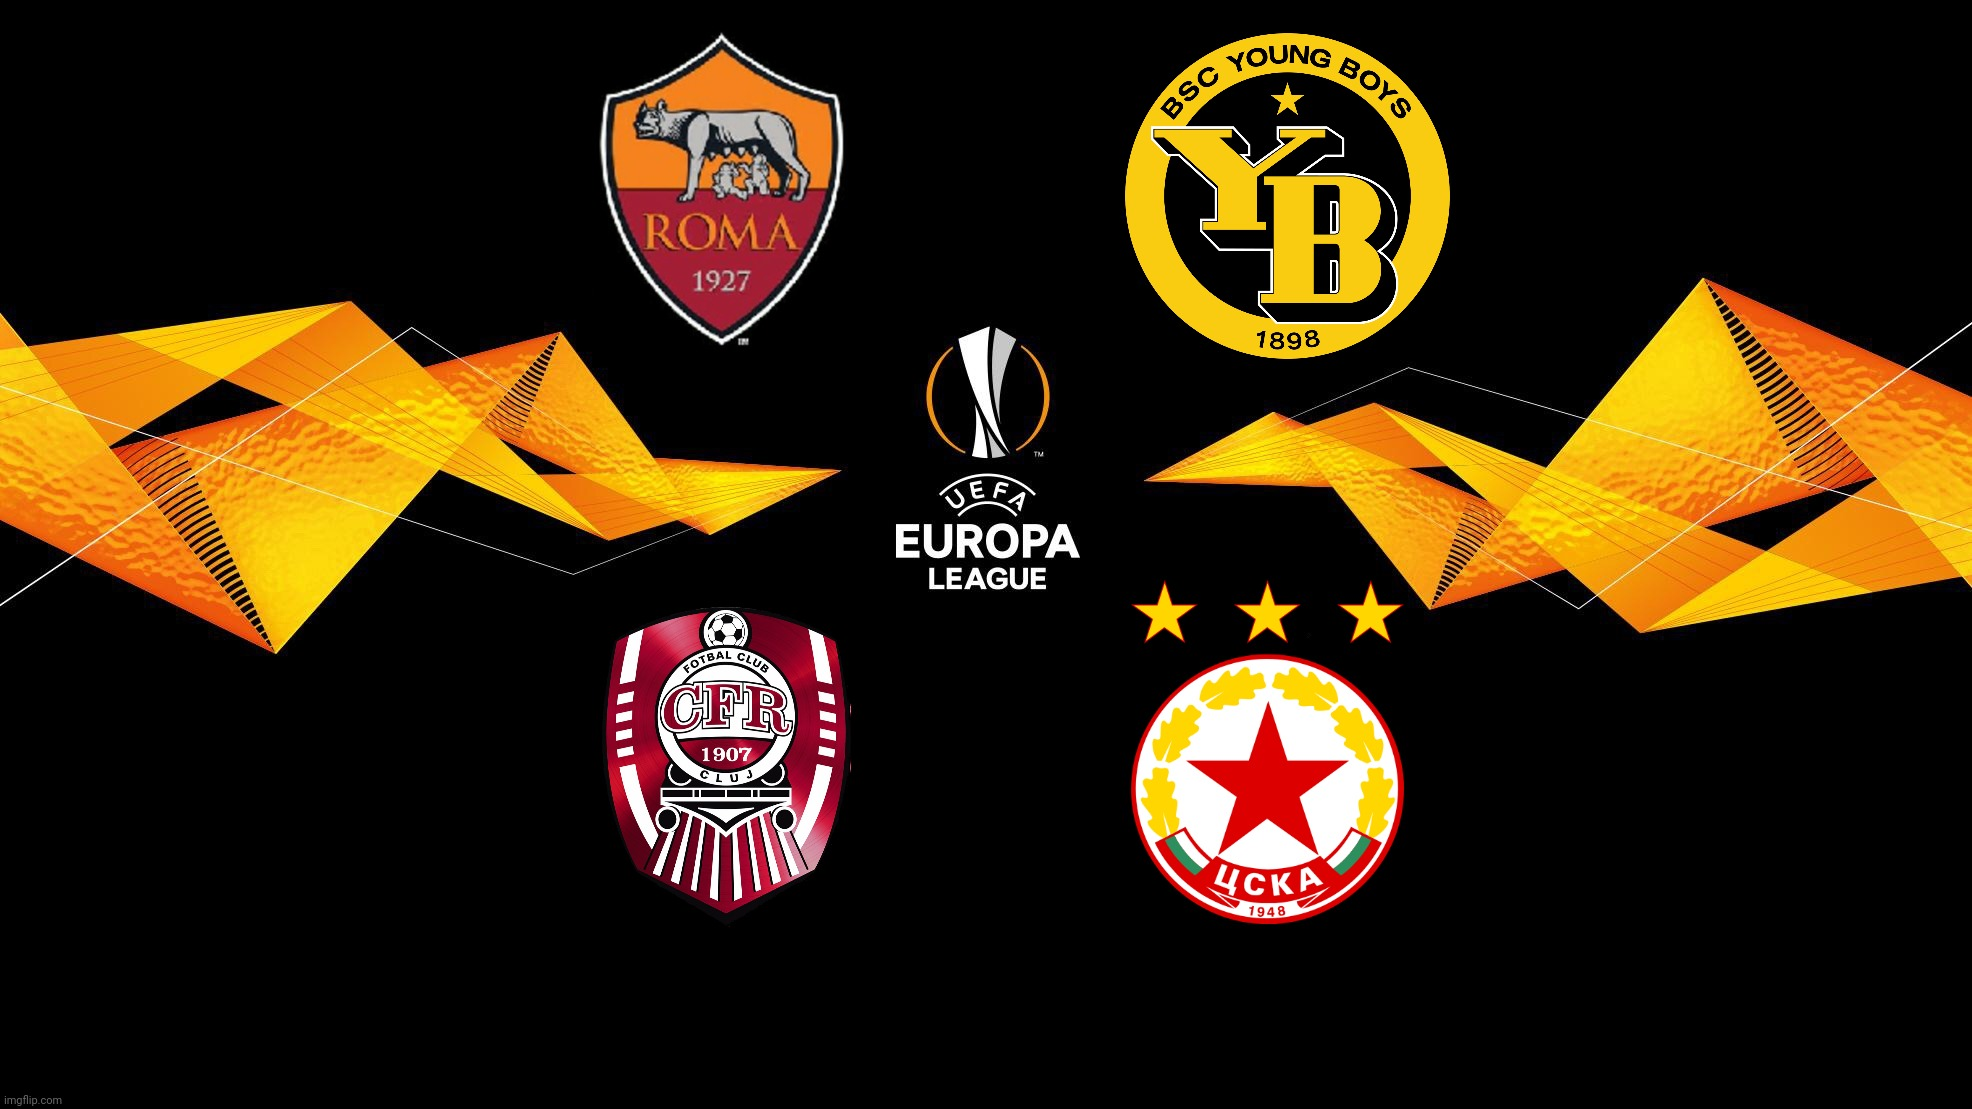 cfr cluj s uefa europa league 2020 2021 group stage opponents imgflip cfr cluj s uefa europa league 2020 2021